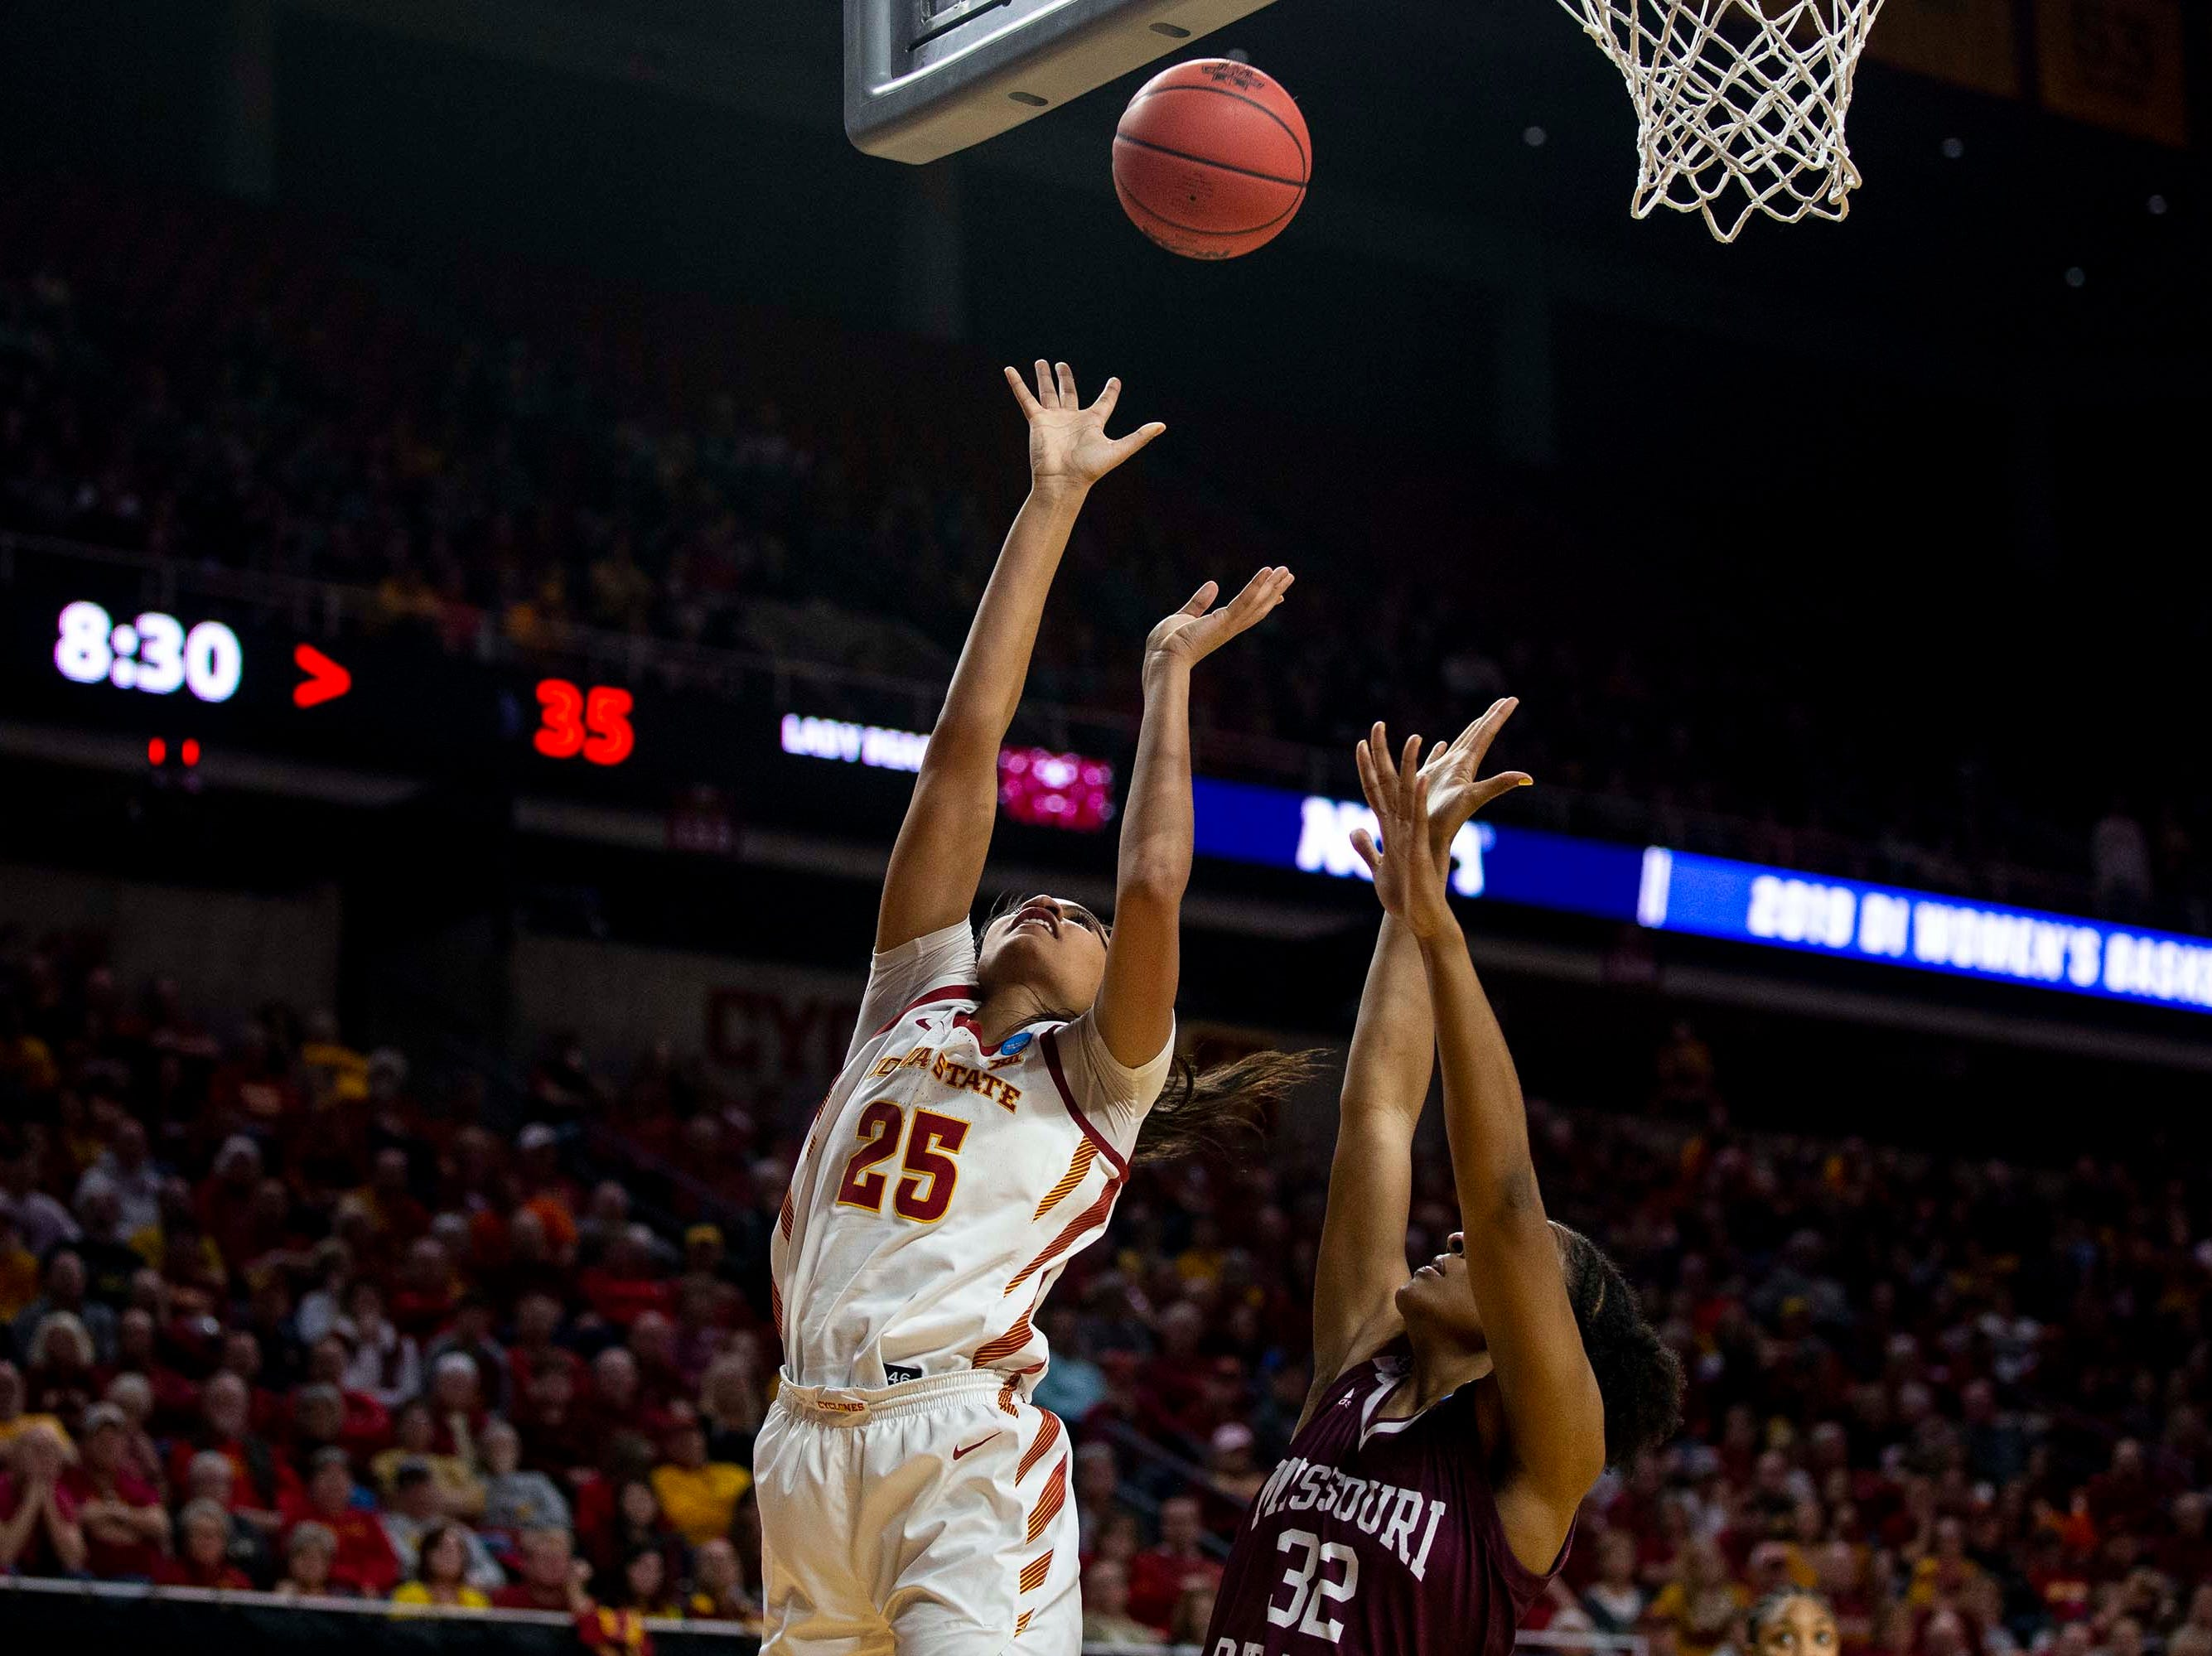 Iowa State's Kristin Scott shoots the ball during the NCAA Tournament second-round match-up between Iowa State and Missouri State on Monday, March 25, 2019, in Hilton Coliseum, in Ames, Iowa.